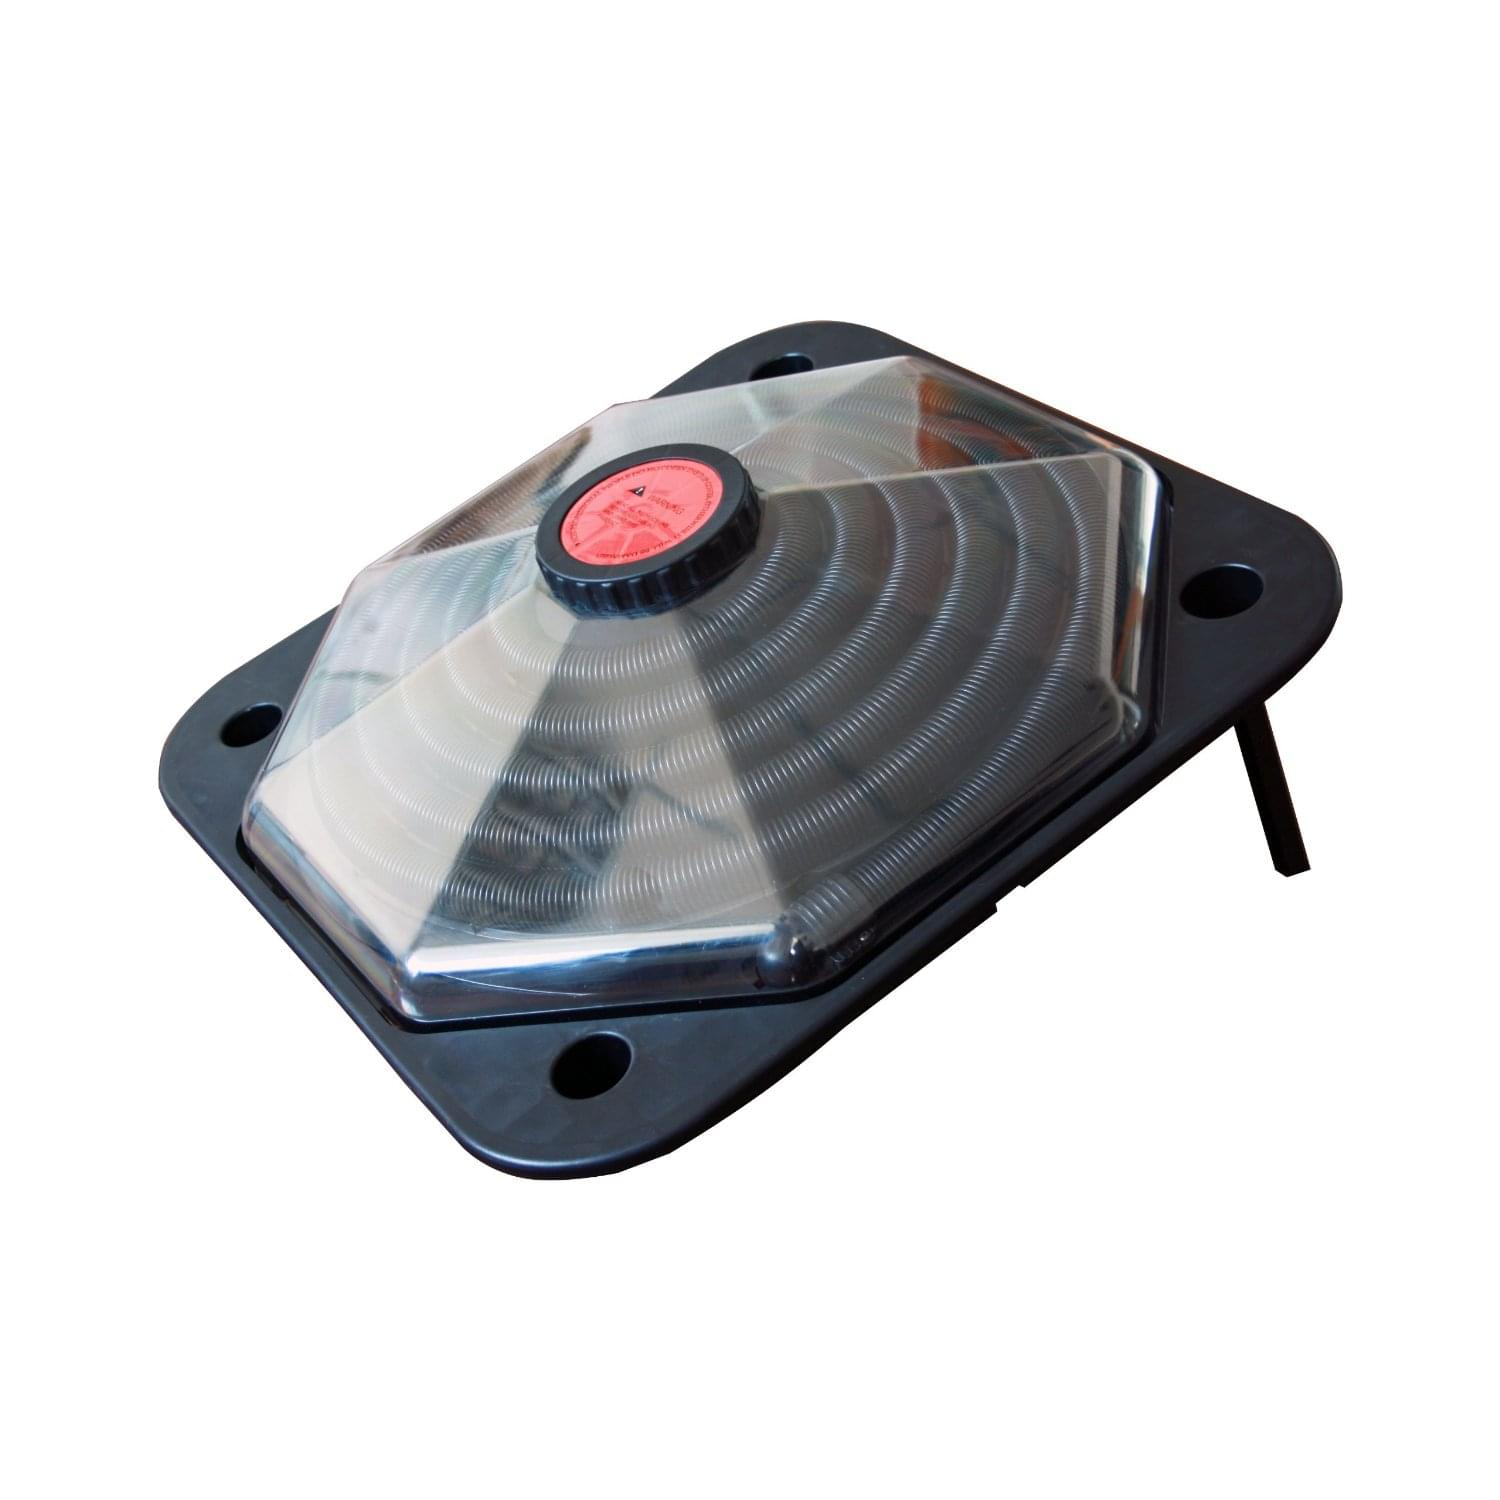 Solar dome swimming pool heater pool supplies canada for Chauffe piscine solaire